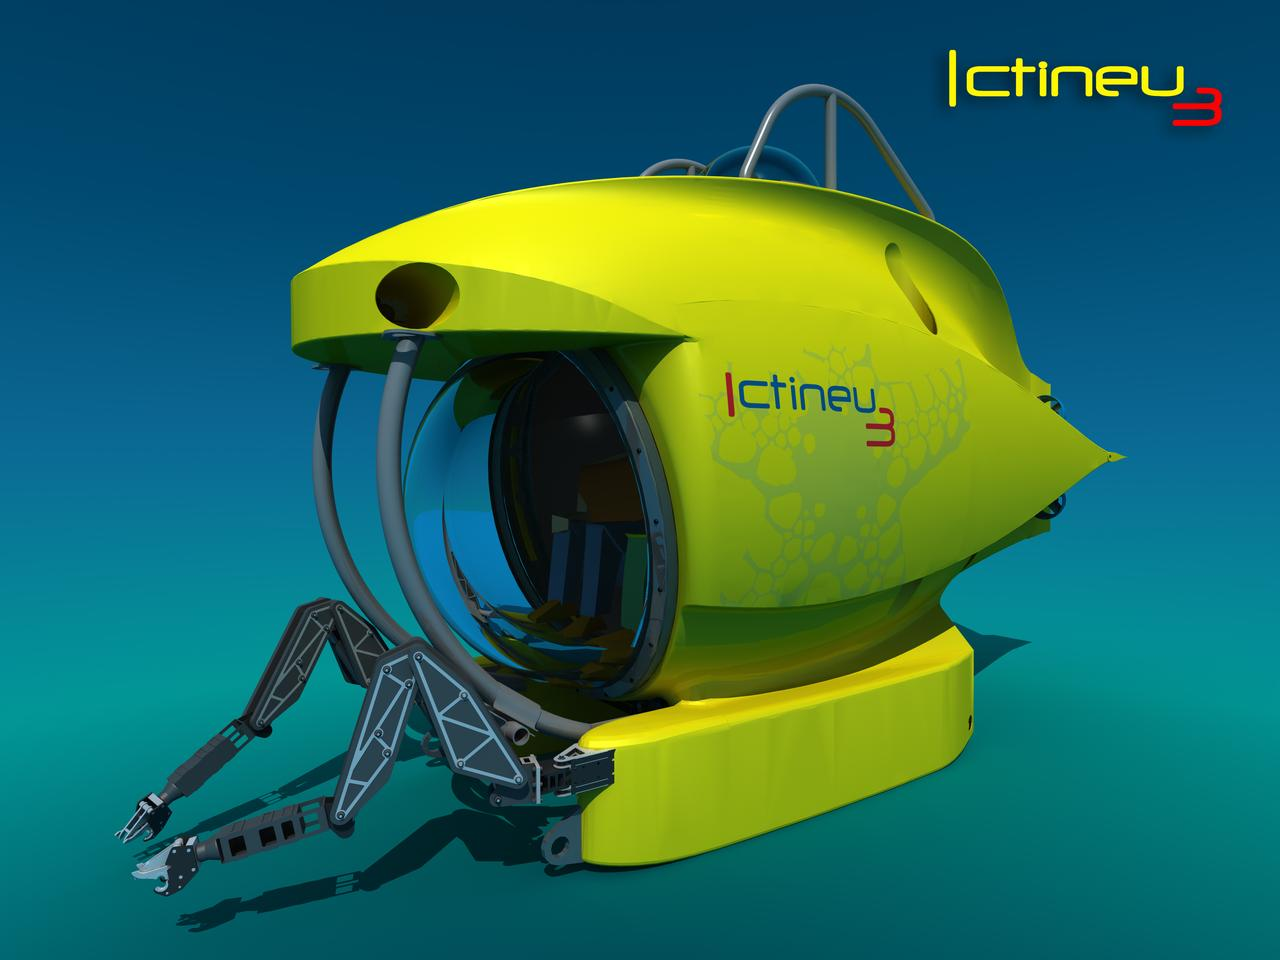 The ICTINEU 3 submersible comes with two robotic arms